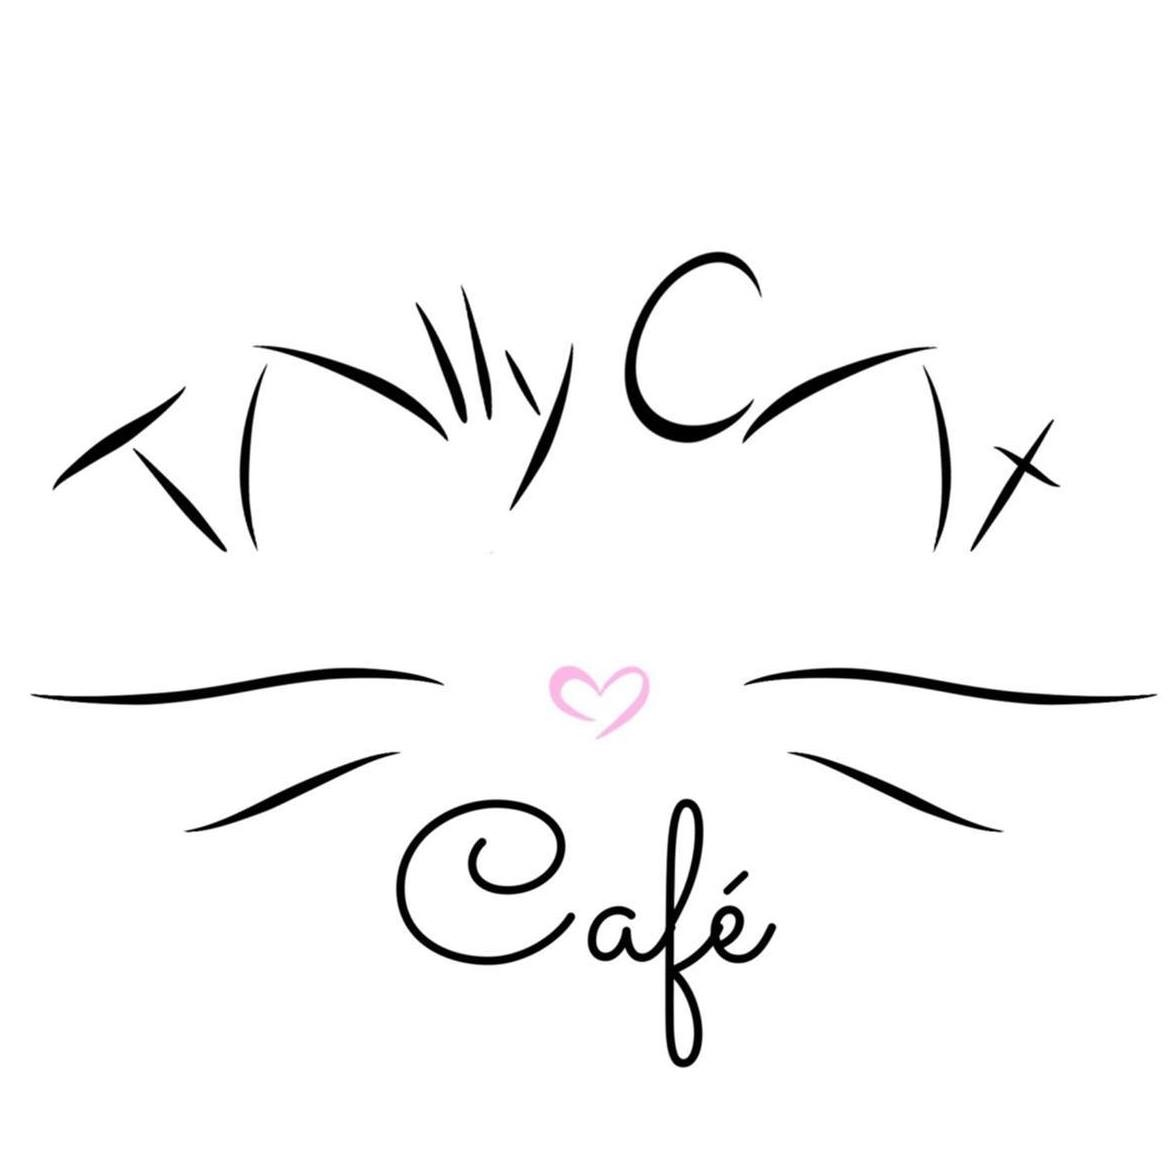 Tally cat cafe